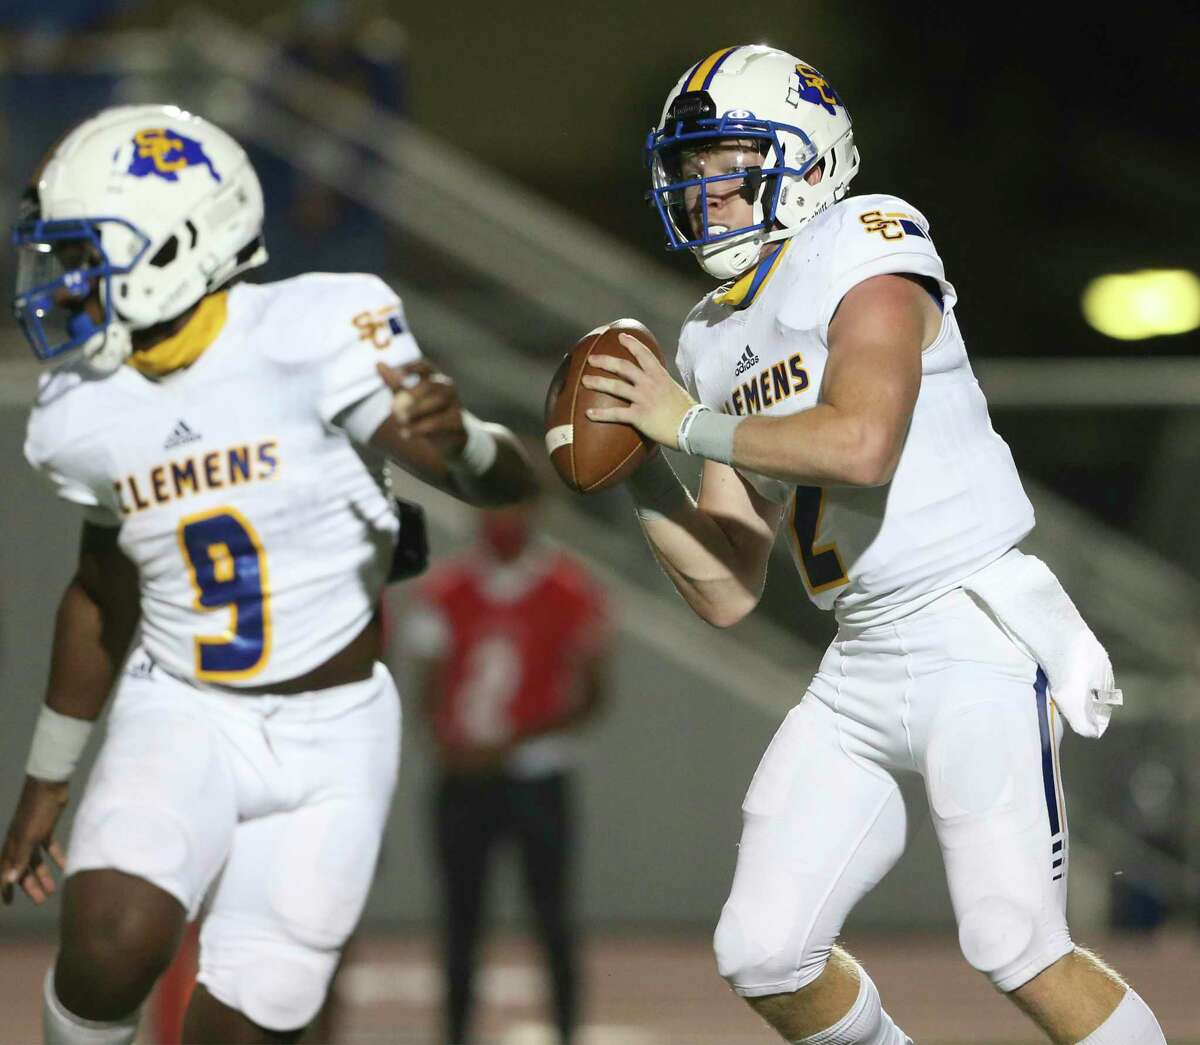 Clemens quarterback Max Didomenico looks for a receiver as Judson hosts Clemens at Rutledge Stadium on Oct.15, 2020.